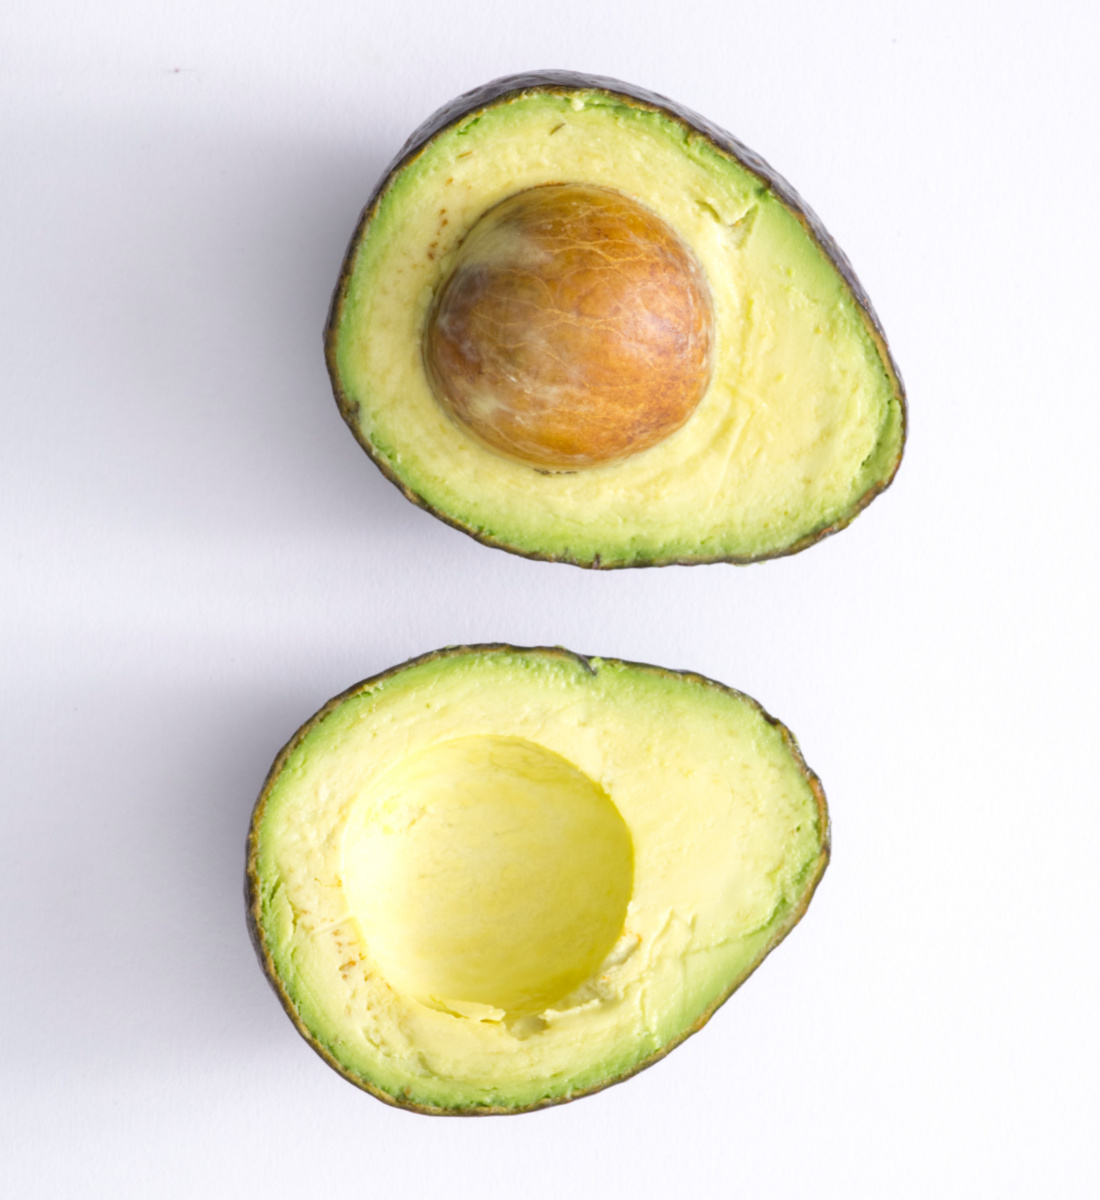 Avocado helps to fortify your hair